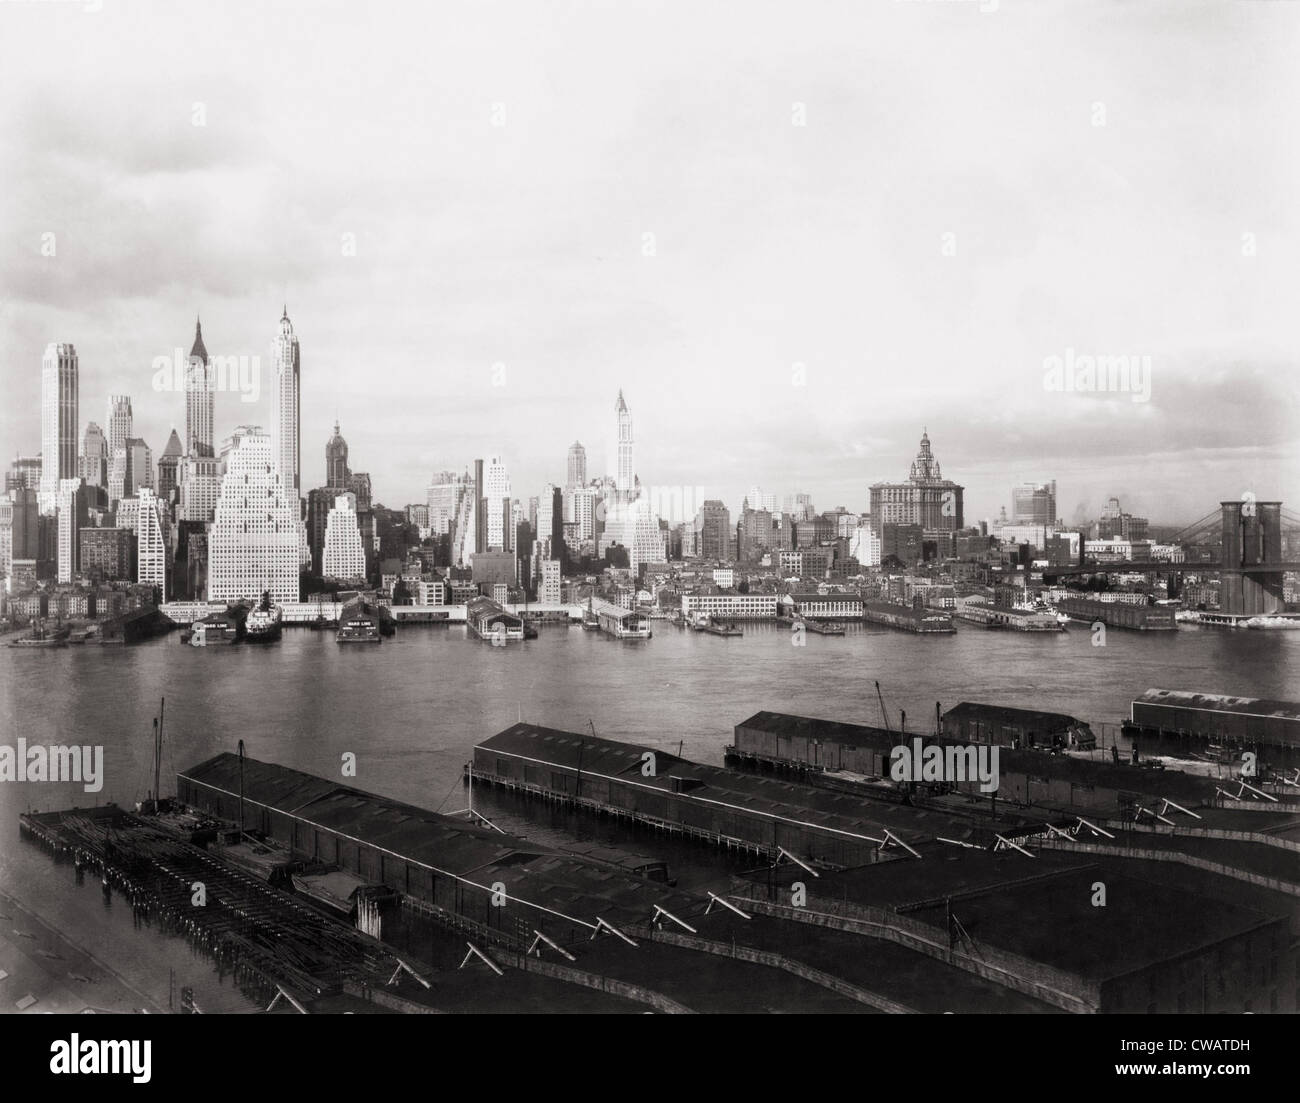 New York City skyline from Brooklyn in 1931.  The Singer (left of center with rounded top) and Woolworth (center) - Stock Image